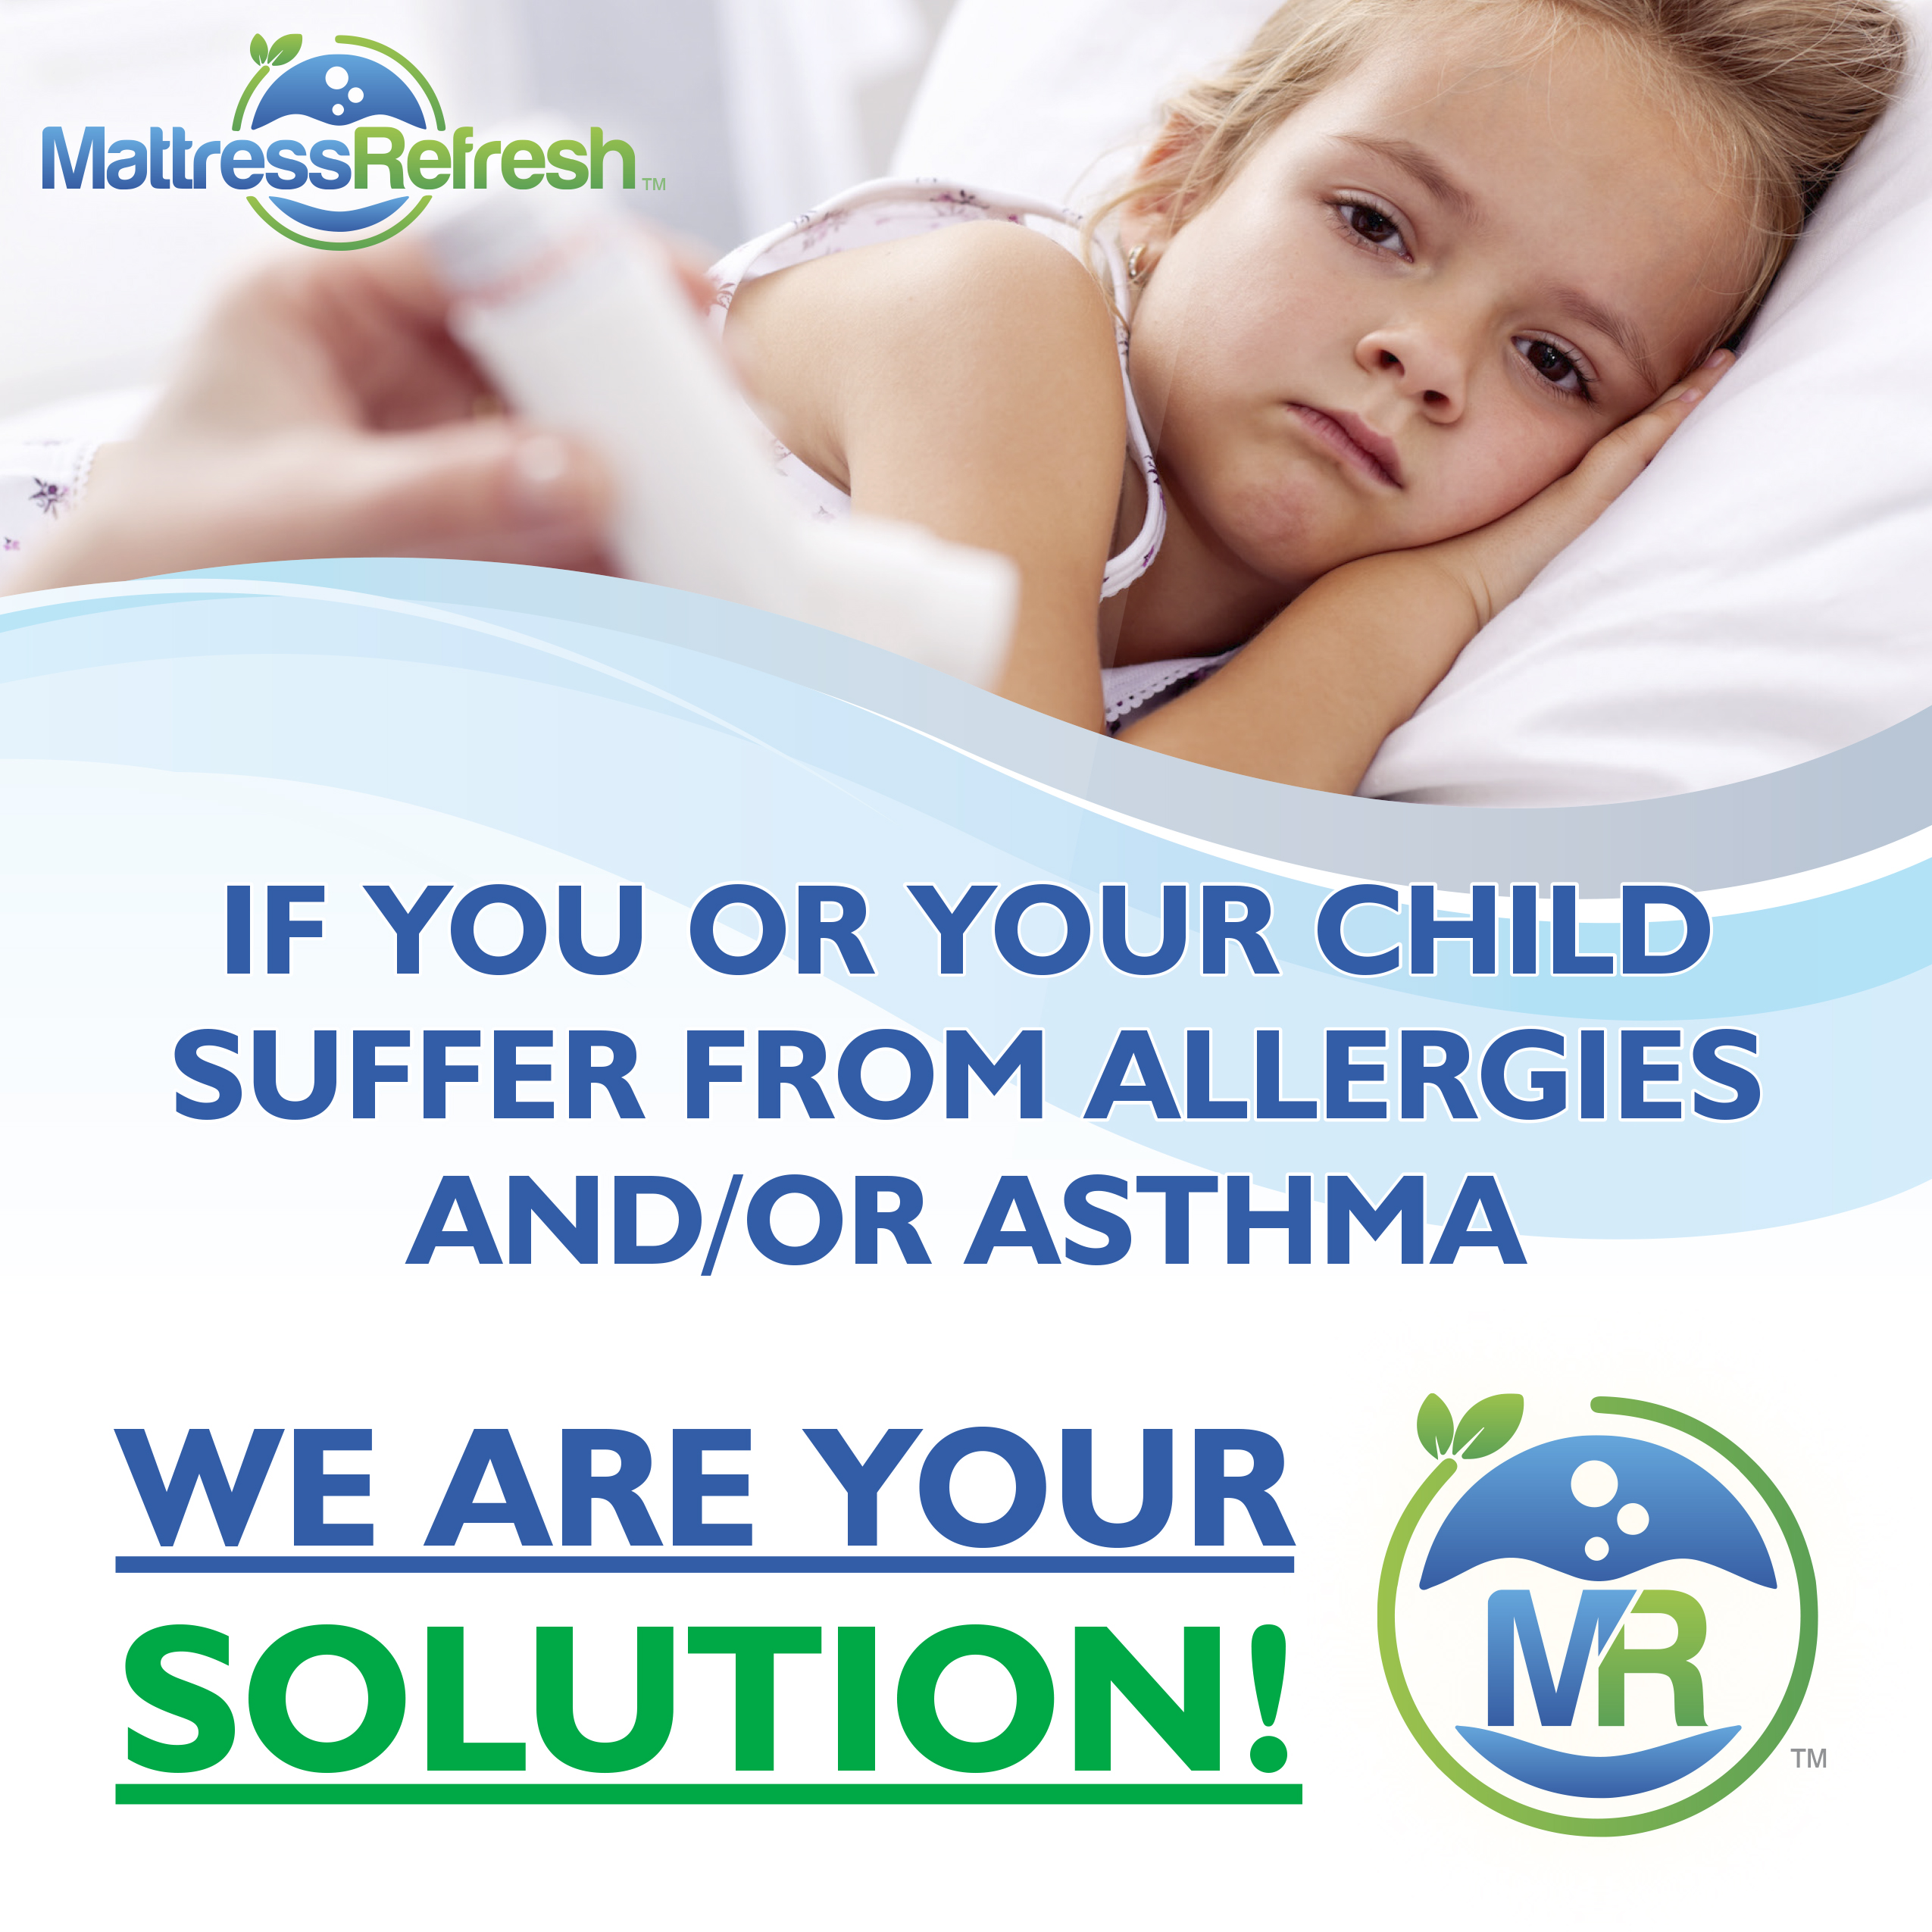 If you or your child suffers from allergies and/or asthma